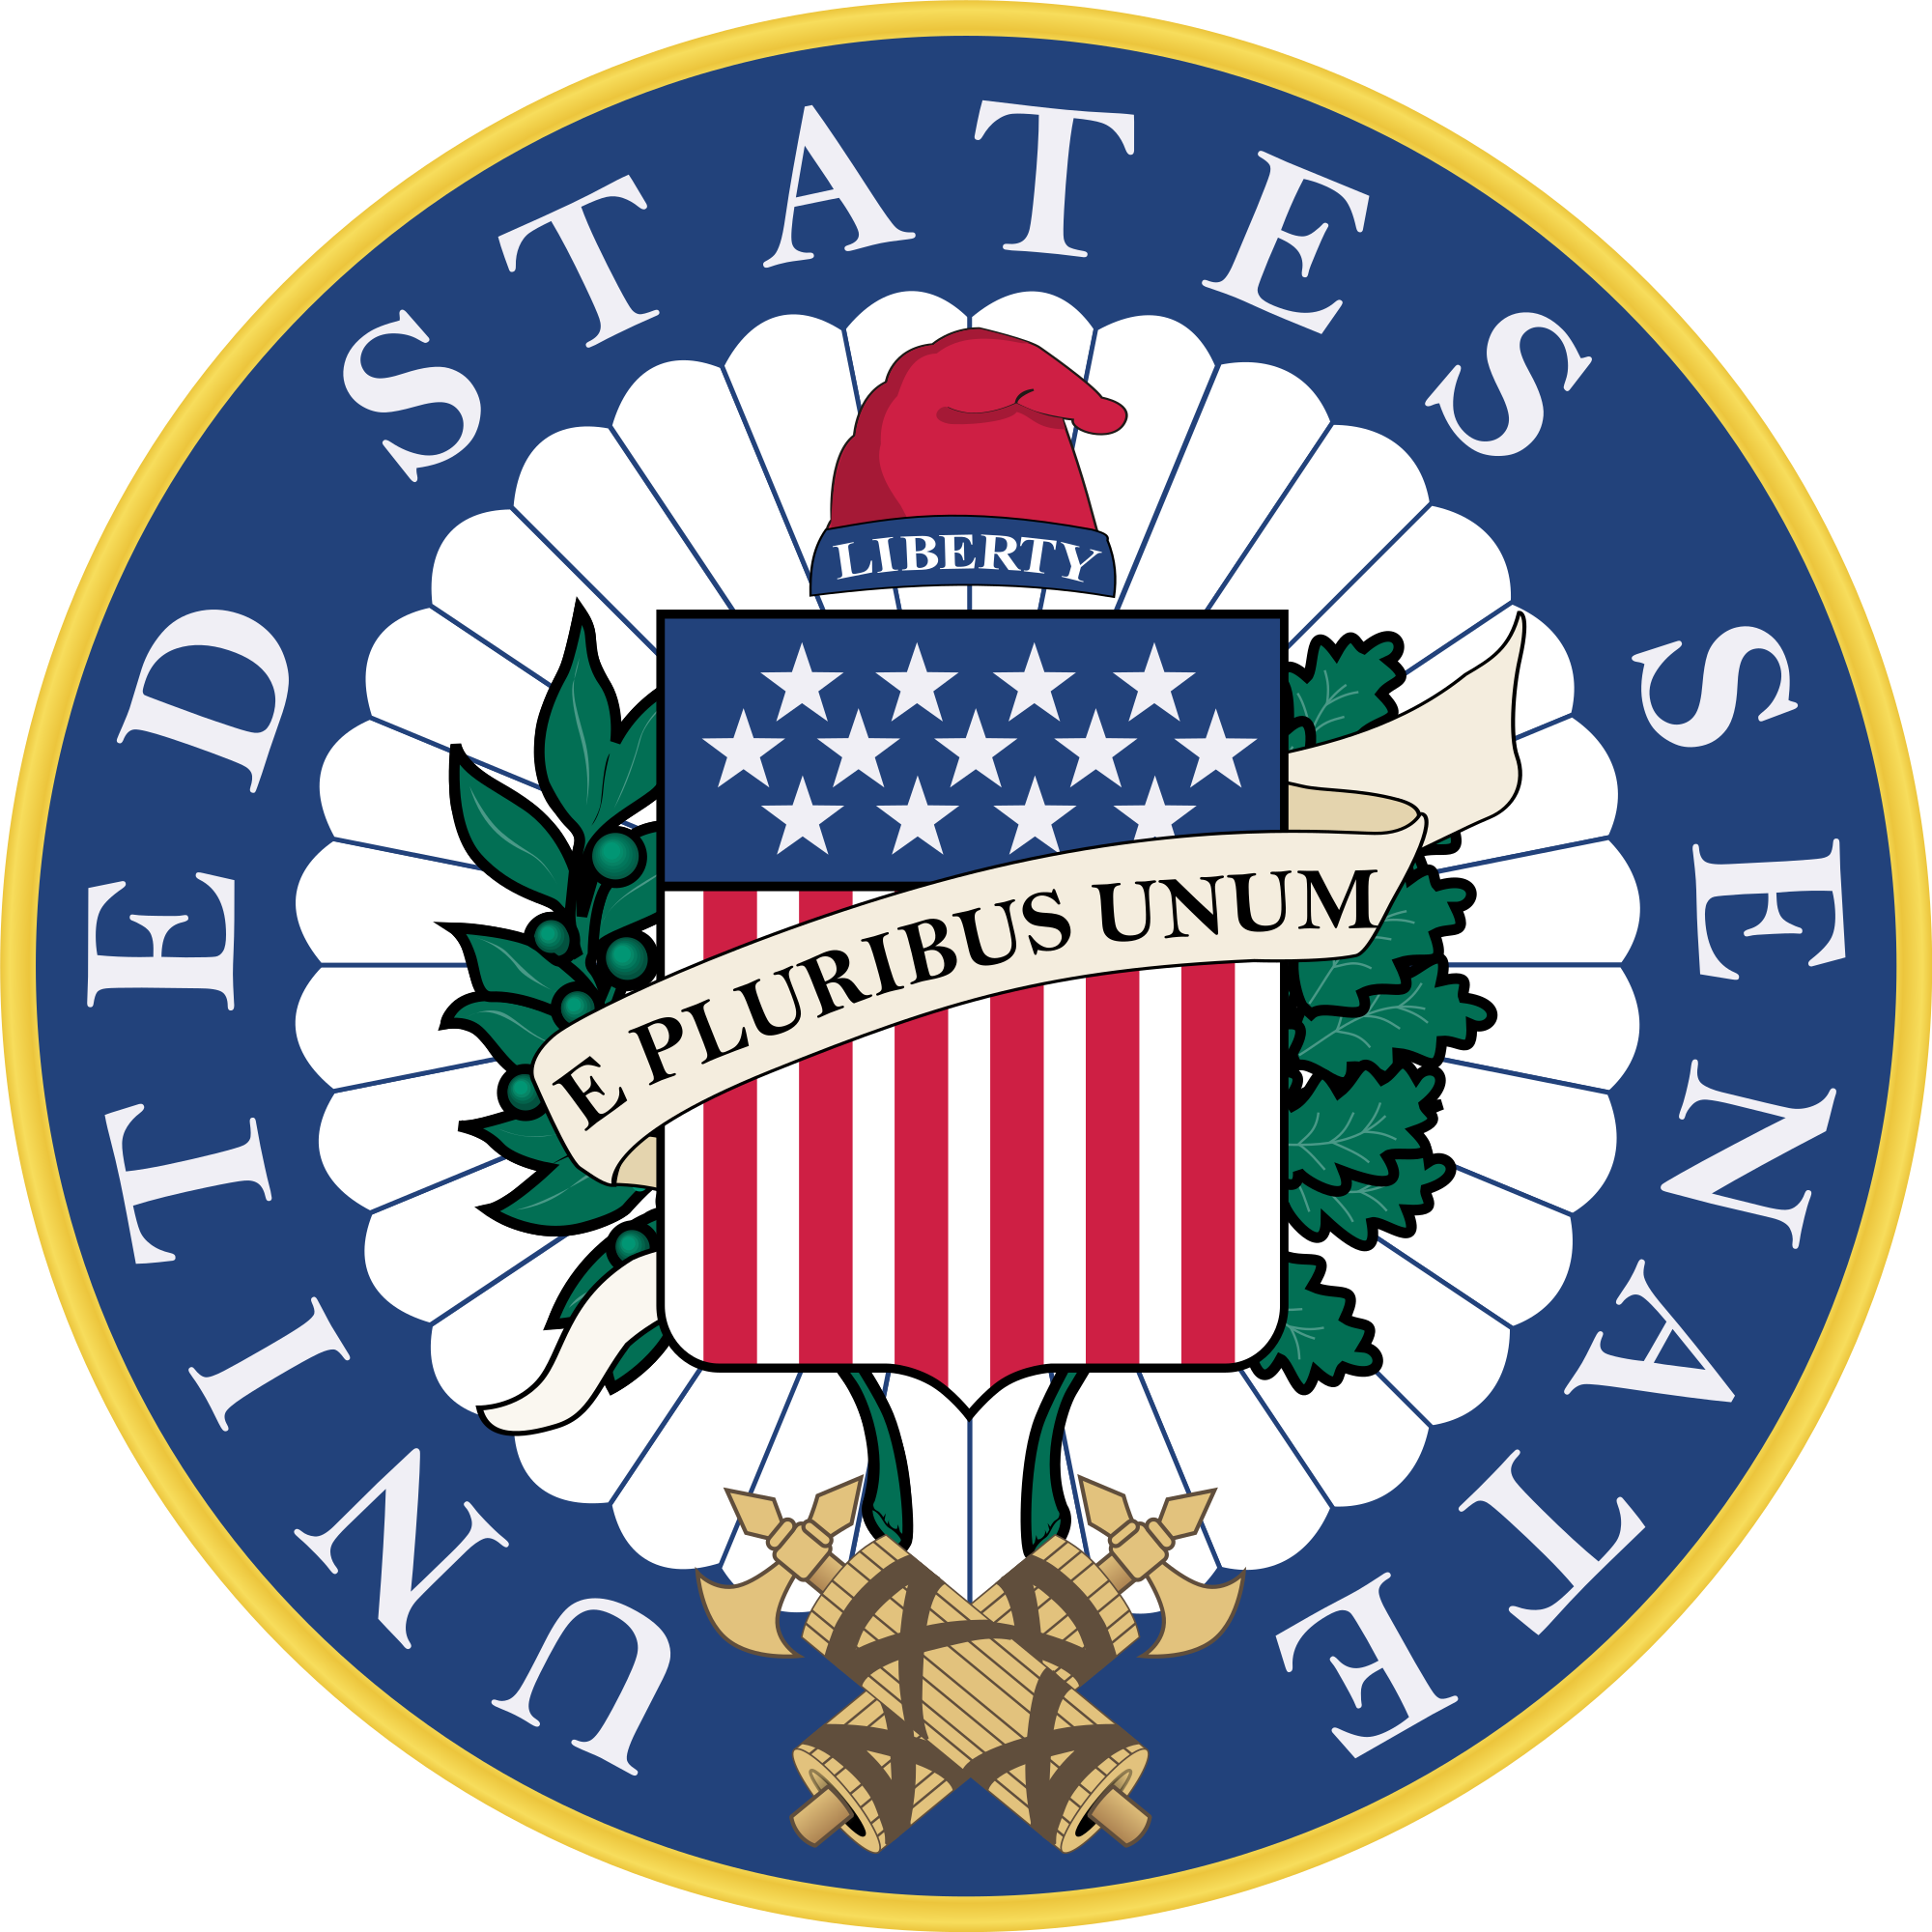 Politics president podium free. Congress clipart direct election senator